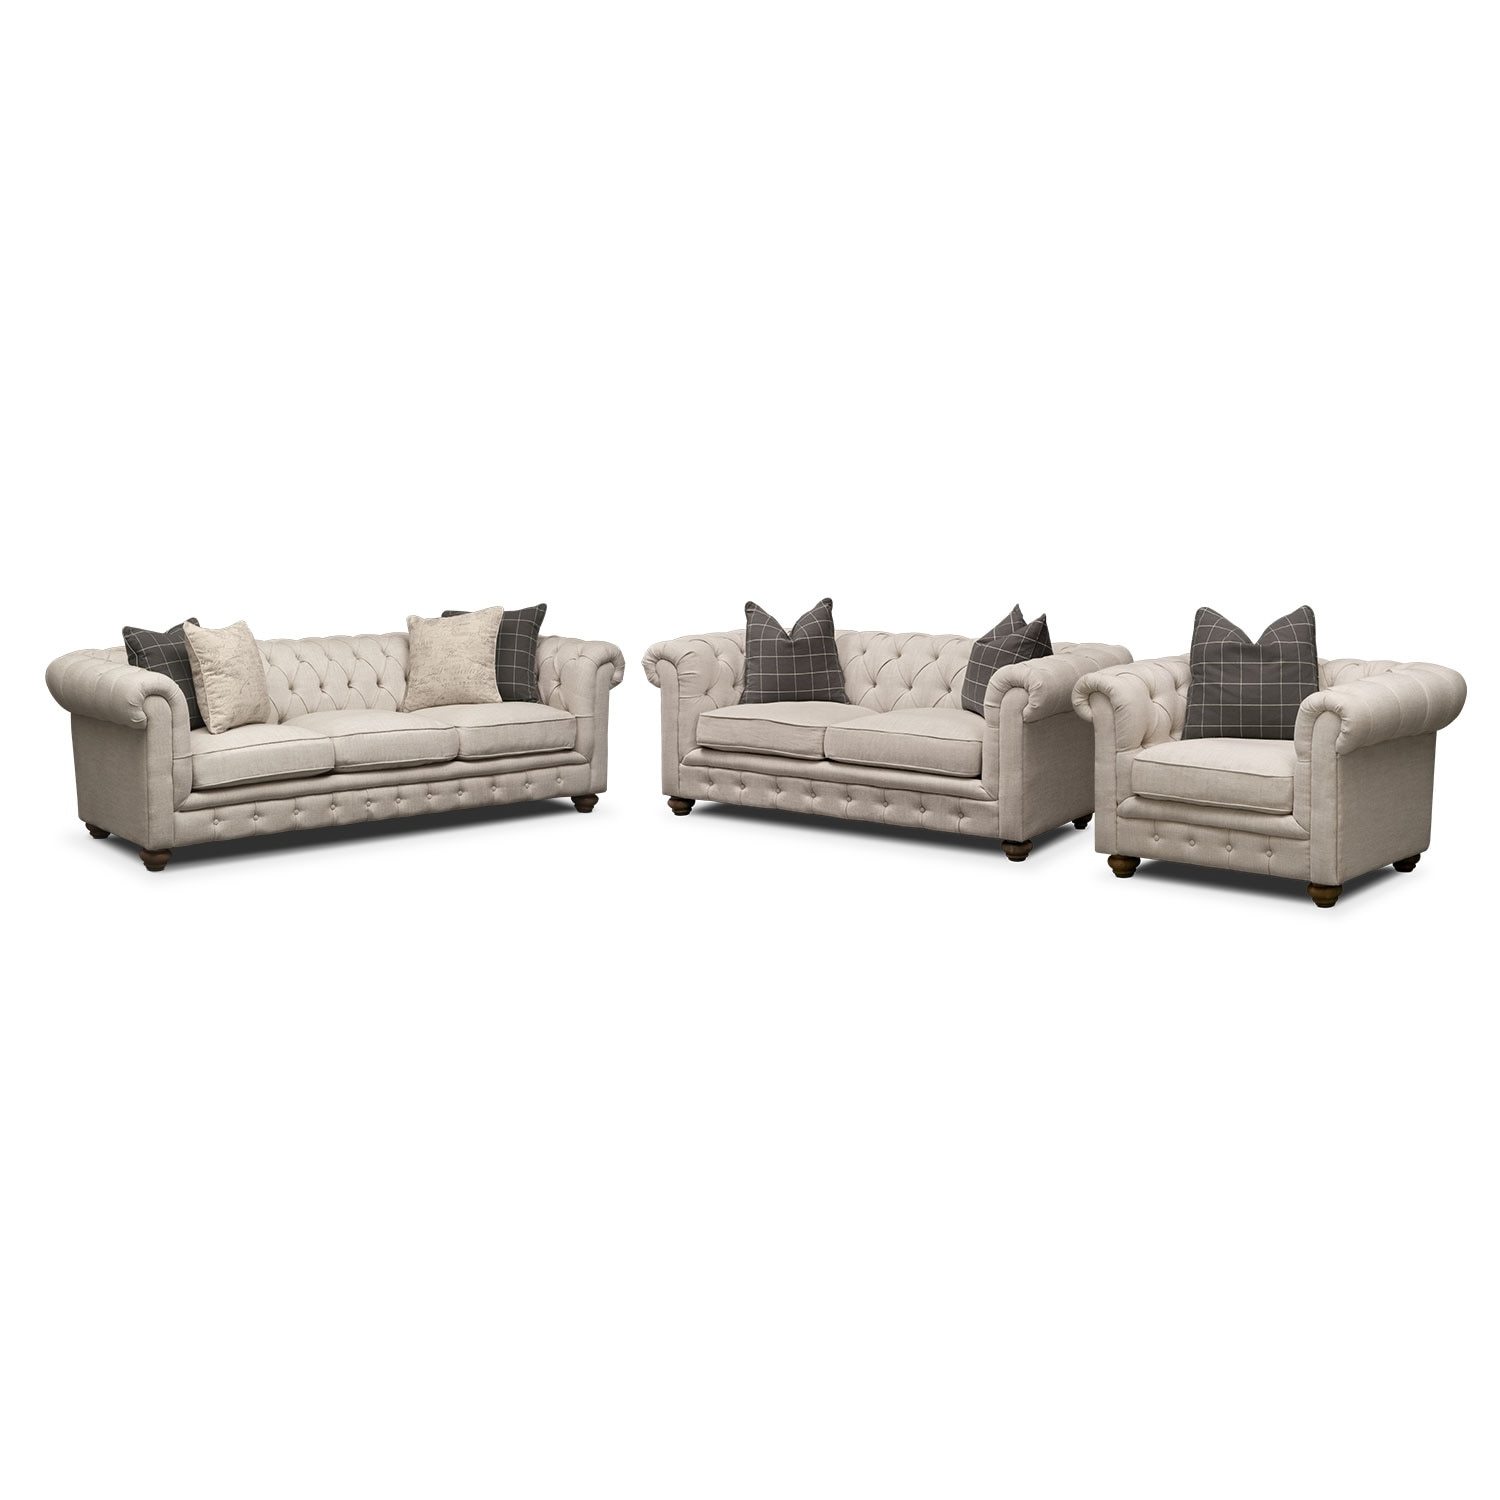 madeline sofa apartment sofa and chair set beige